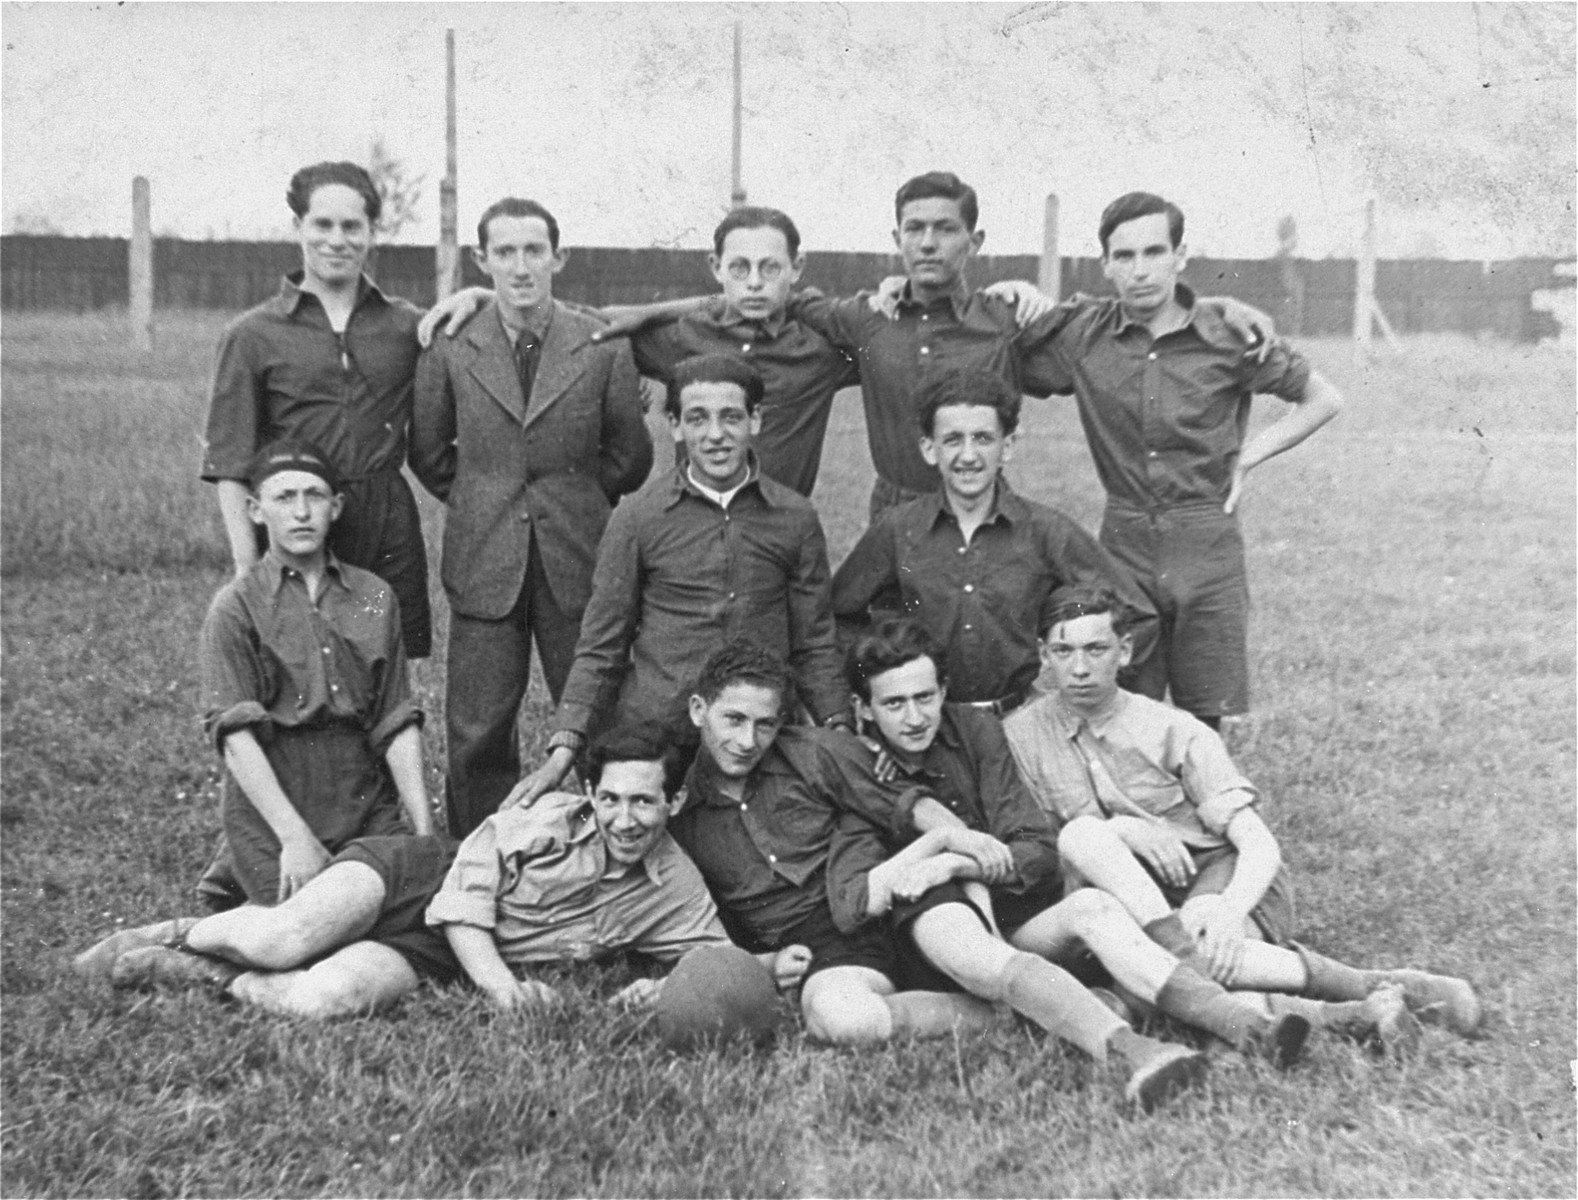 This image is of a Hanoar Hazioni soccer team in the Polish town of Stryj. They are all either 15 or 16 years old. Only two, Max Kaiser and Isaac Dickmann remain alive.